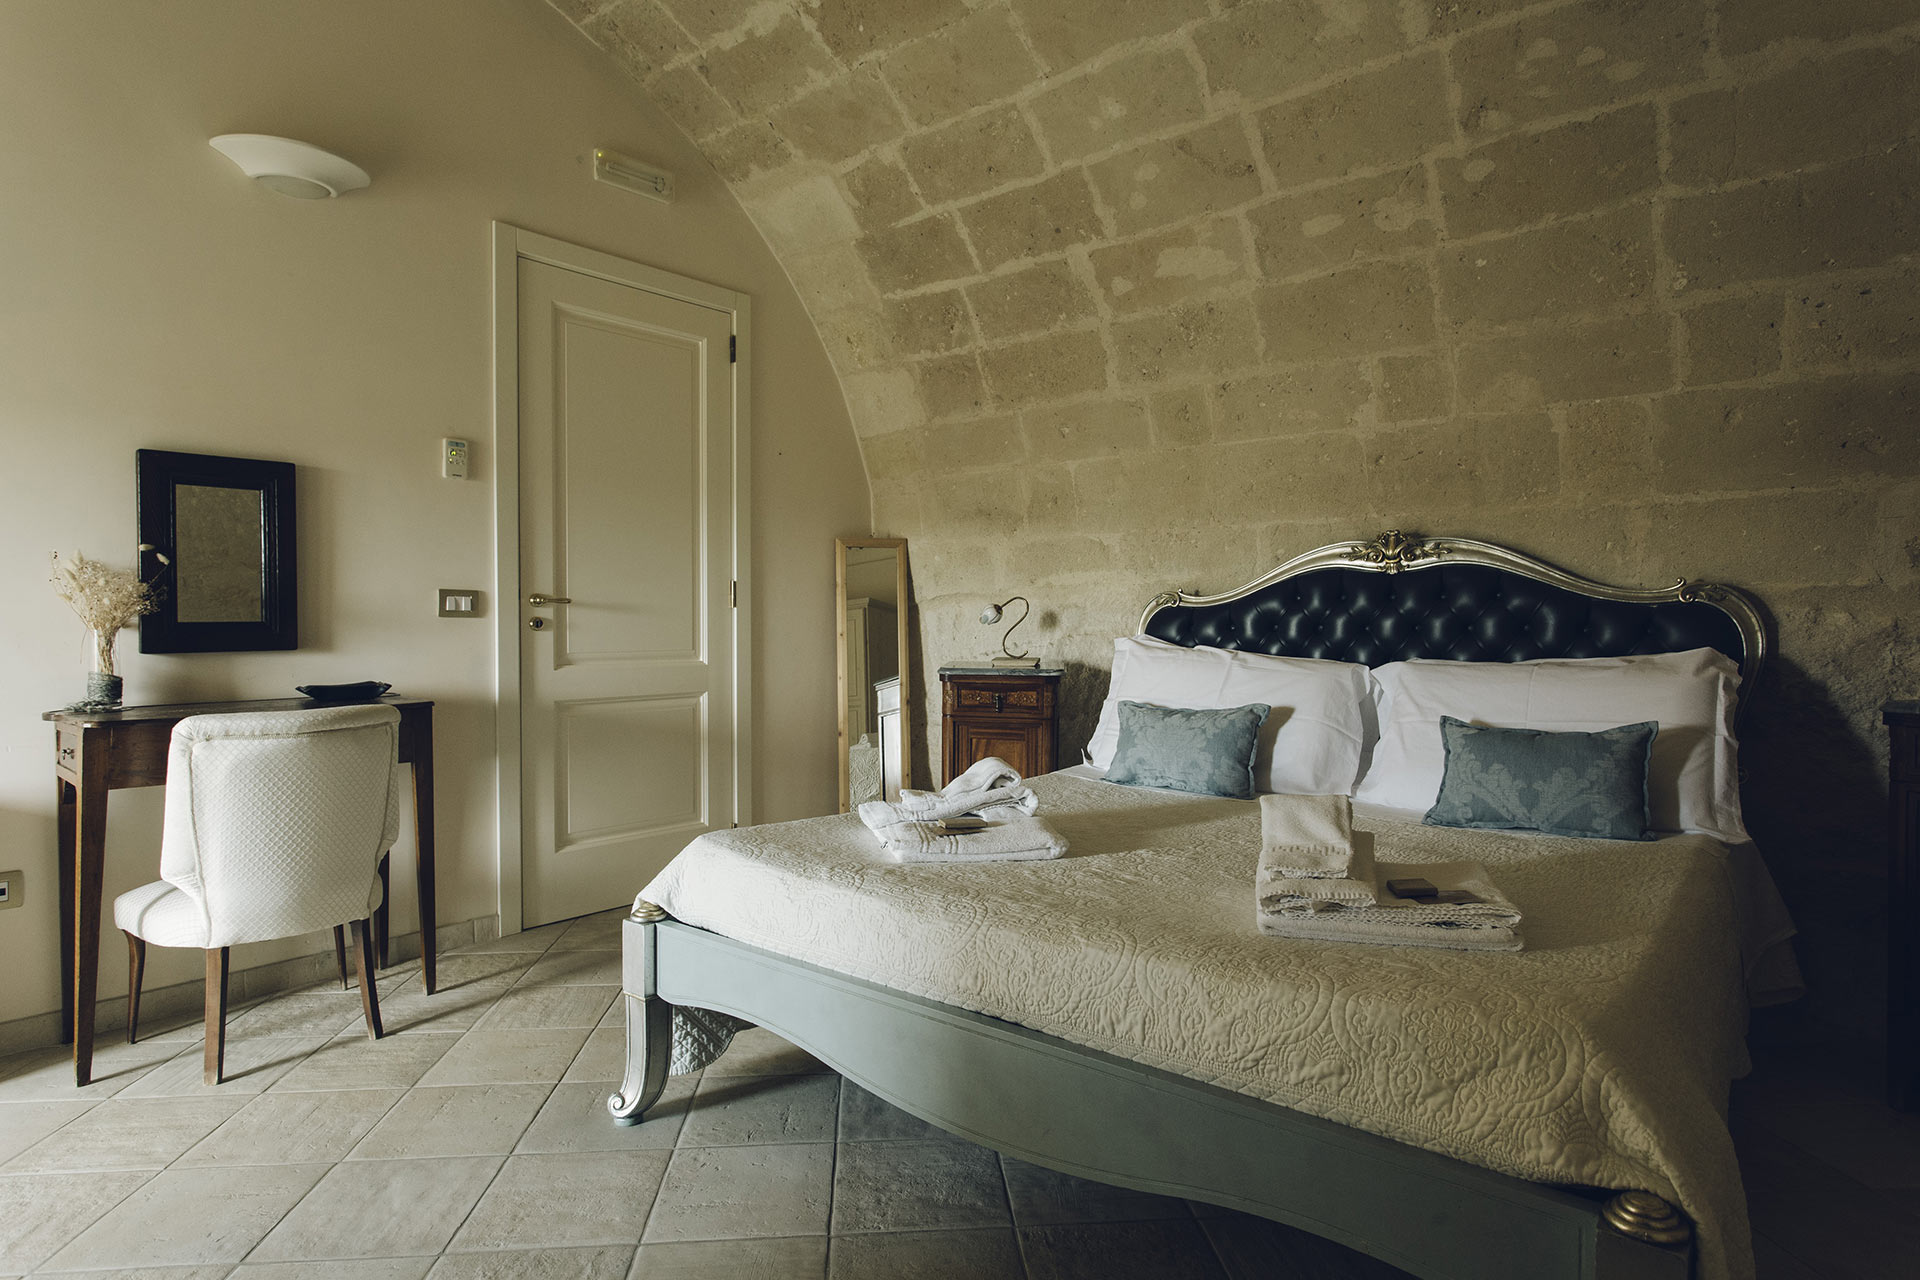 Bed & Breakfast Matera